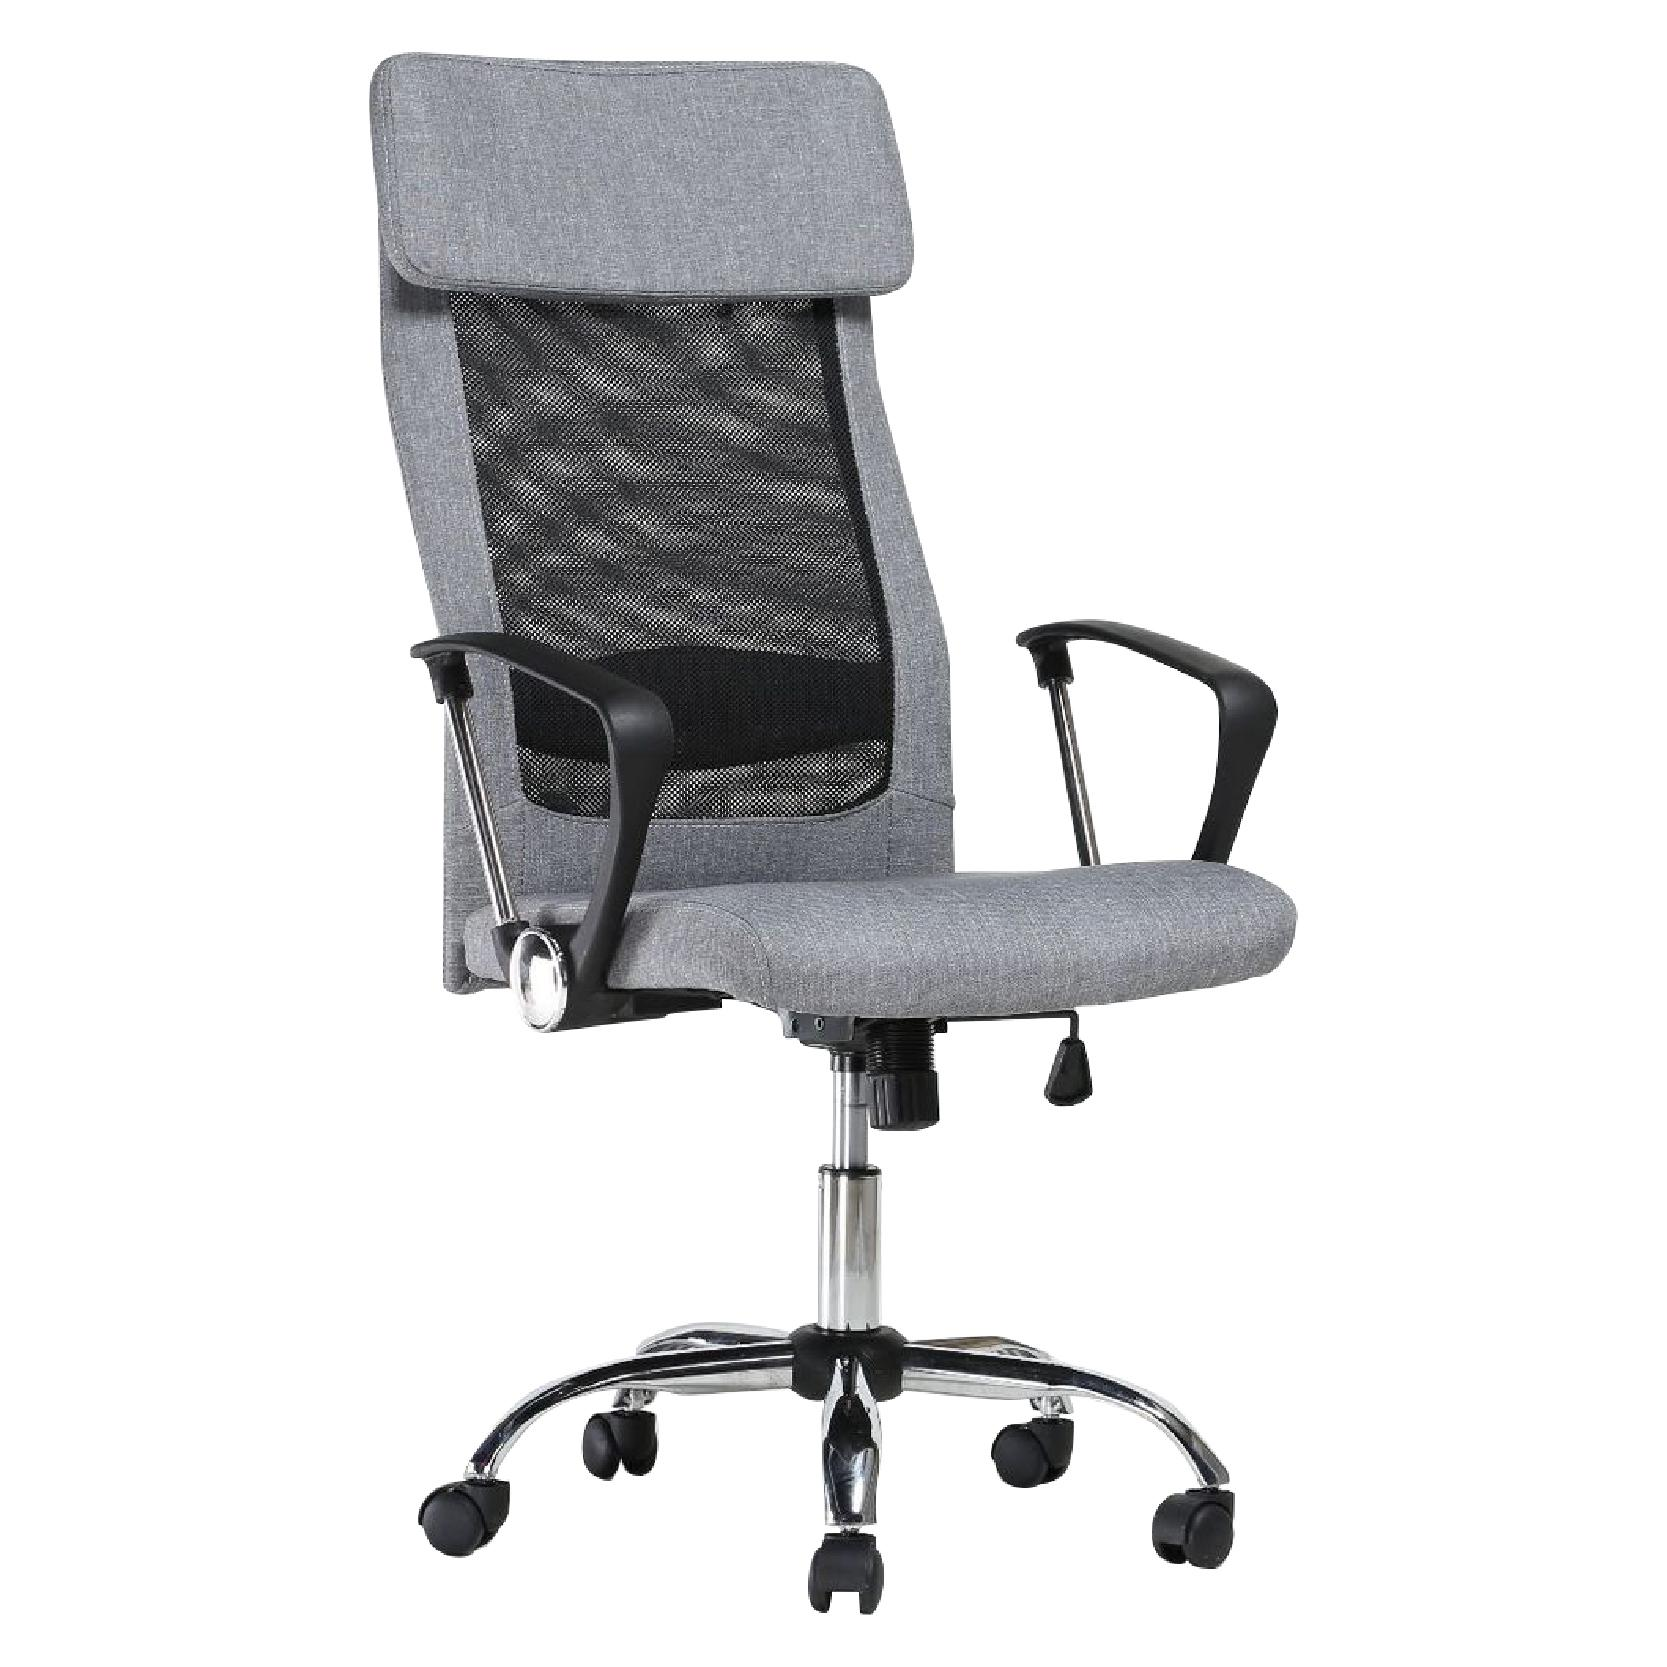 JIJI Director Office Chair Ver.2 (Free Installation) Office chairs / Study chair / Gaming chair / Ergonomic / Free 6 Months Warranty (SG) Singapore